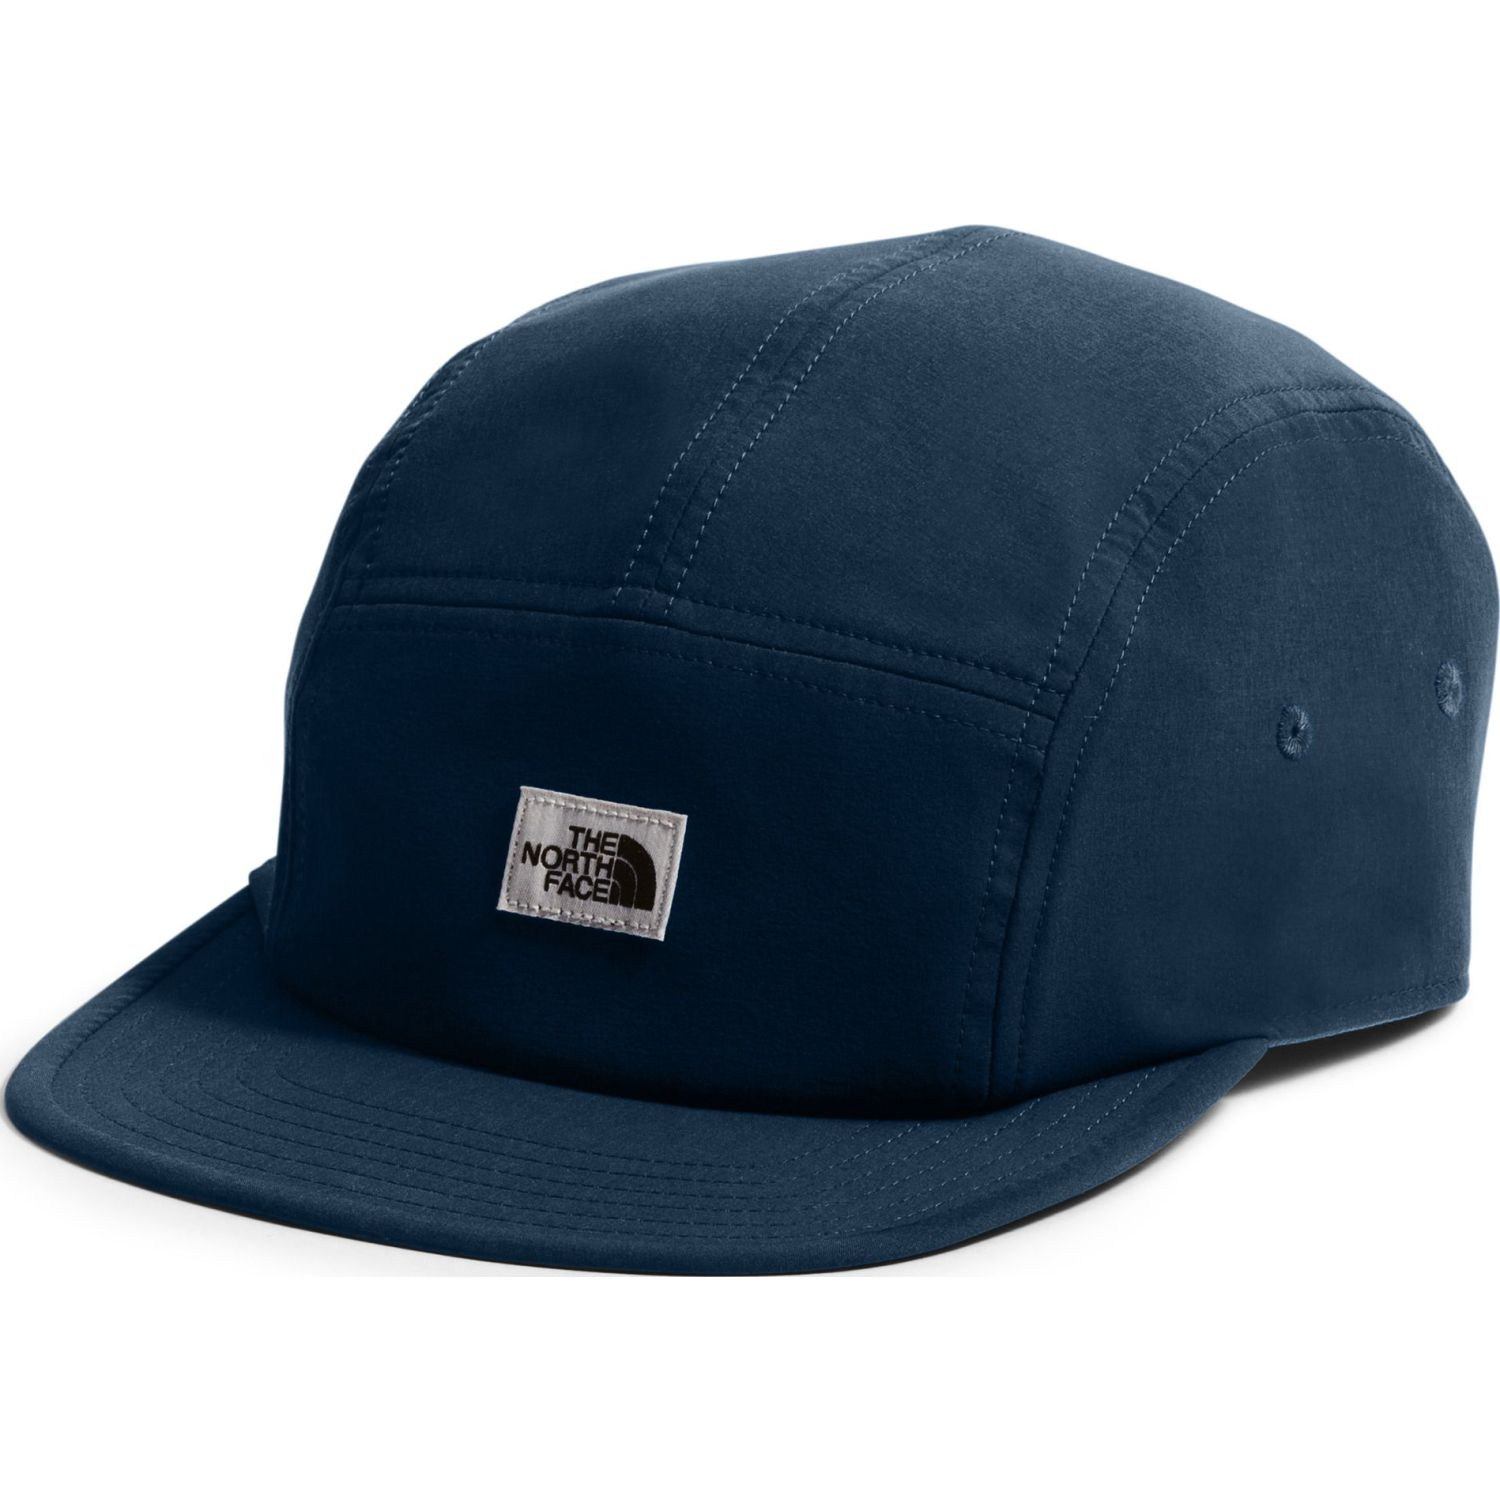 The North Face MARINA CAMP HAT Azul Gorras de béisbol